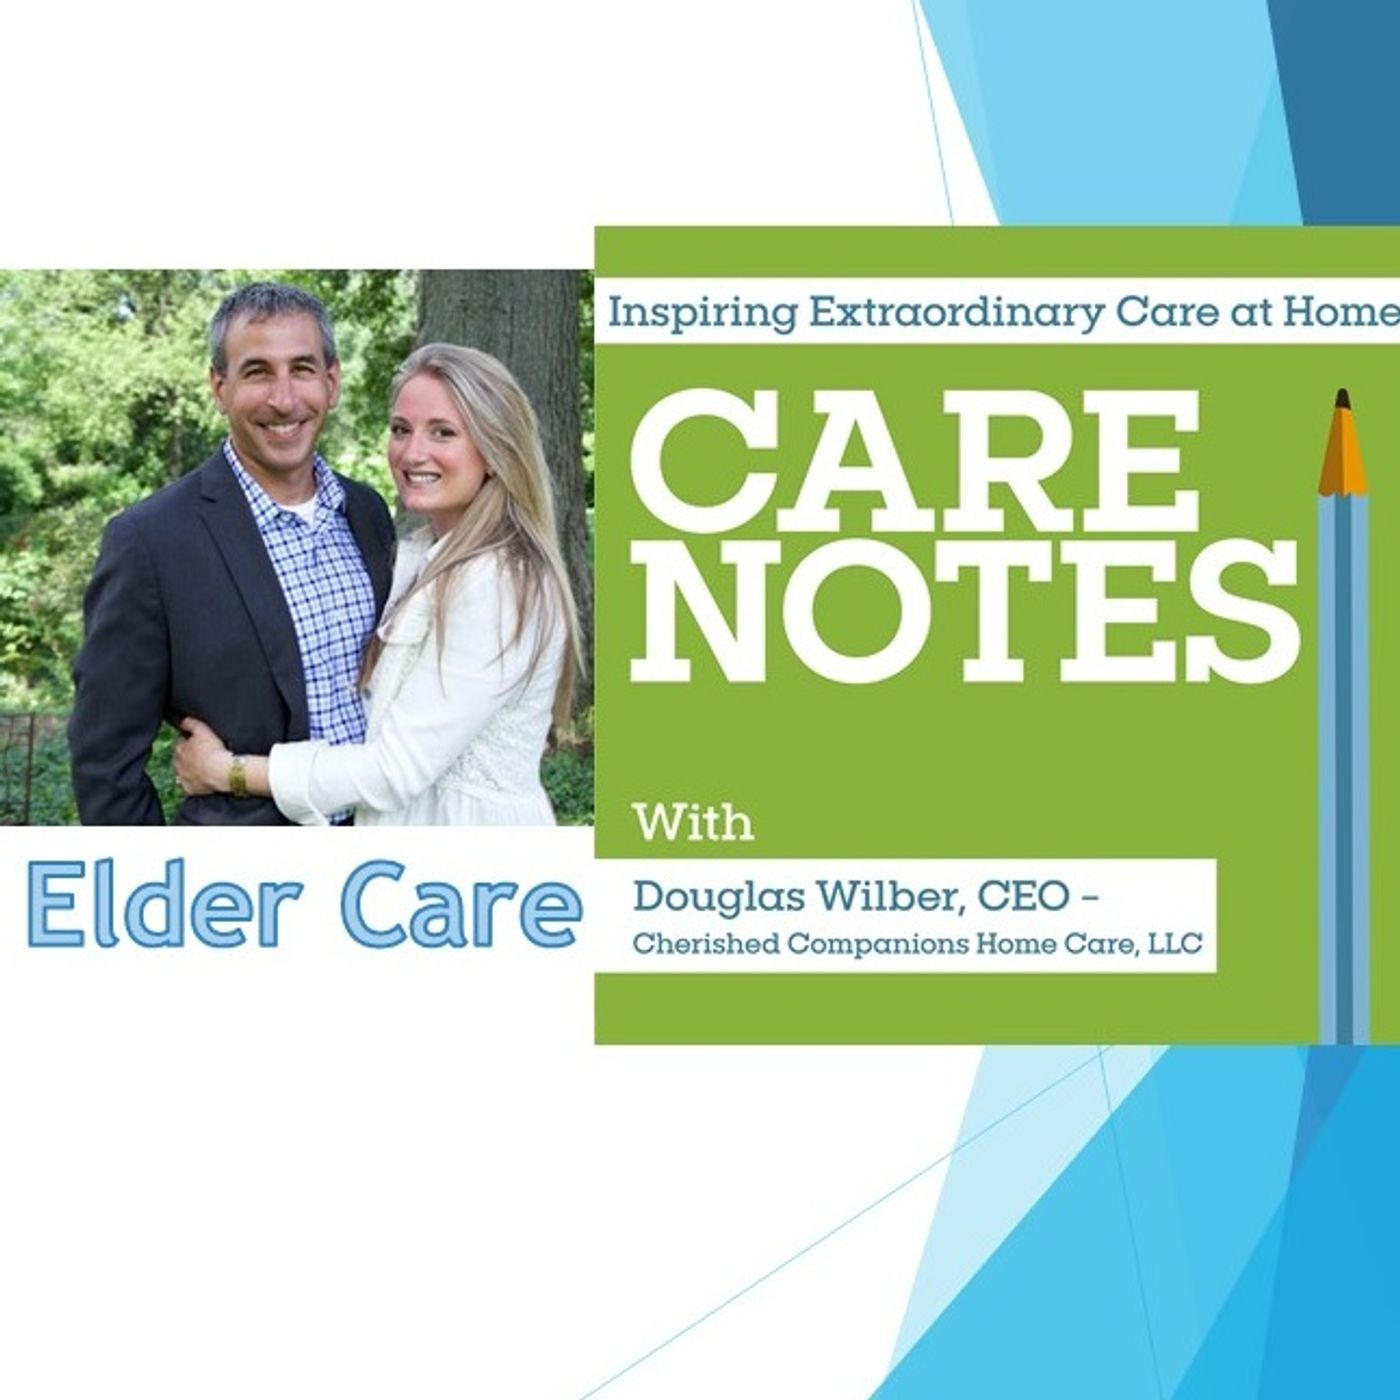 6care-notes-with-doug-wilber-brad-heather-greene 9_4_18